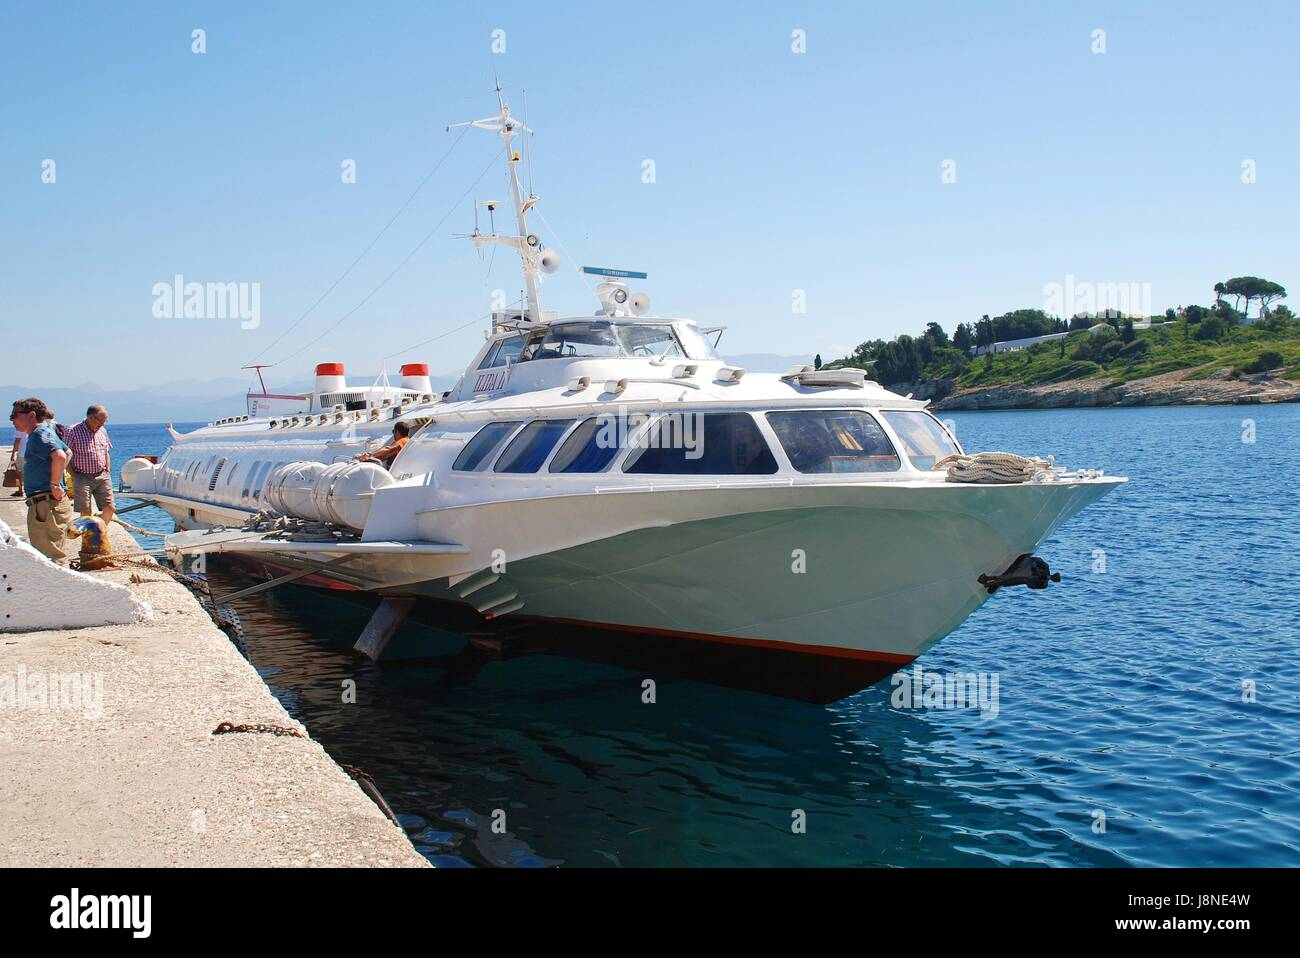 Joy Cruises hydrofoil Ilida II moored at Gaios harbour on the Greek island of Paxos on June 23, 2014. The 35mtr - Stock Image